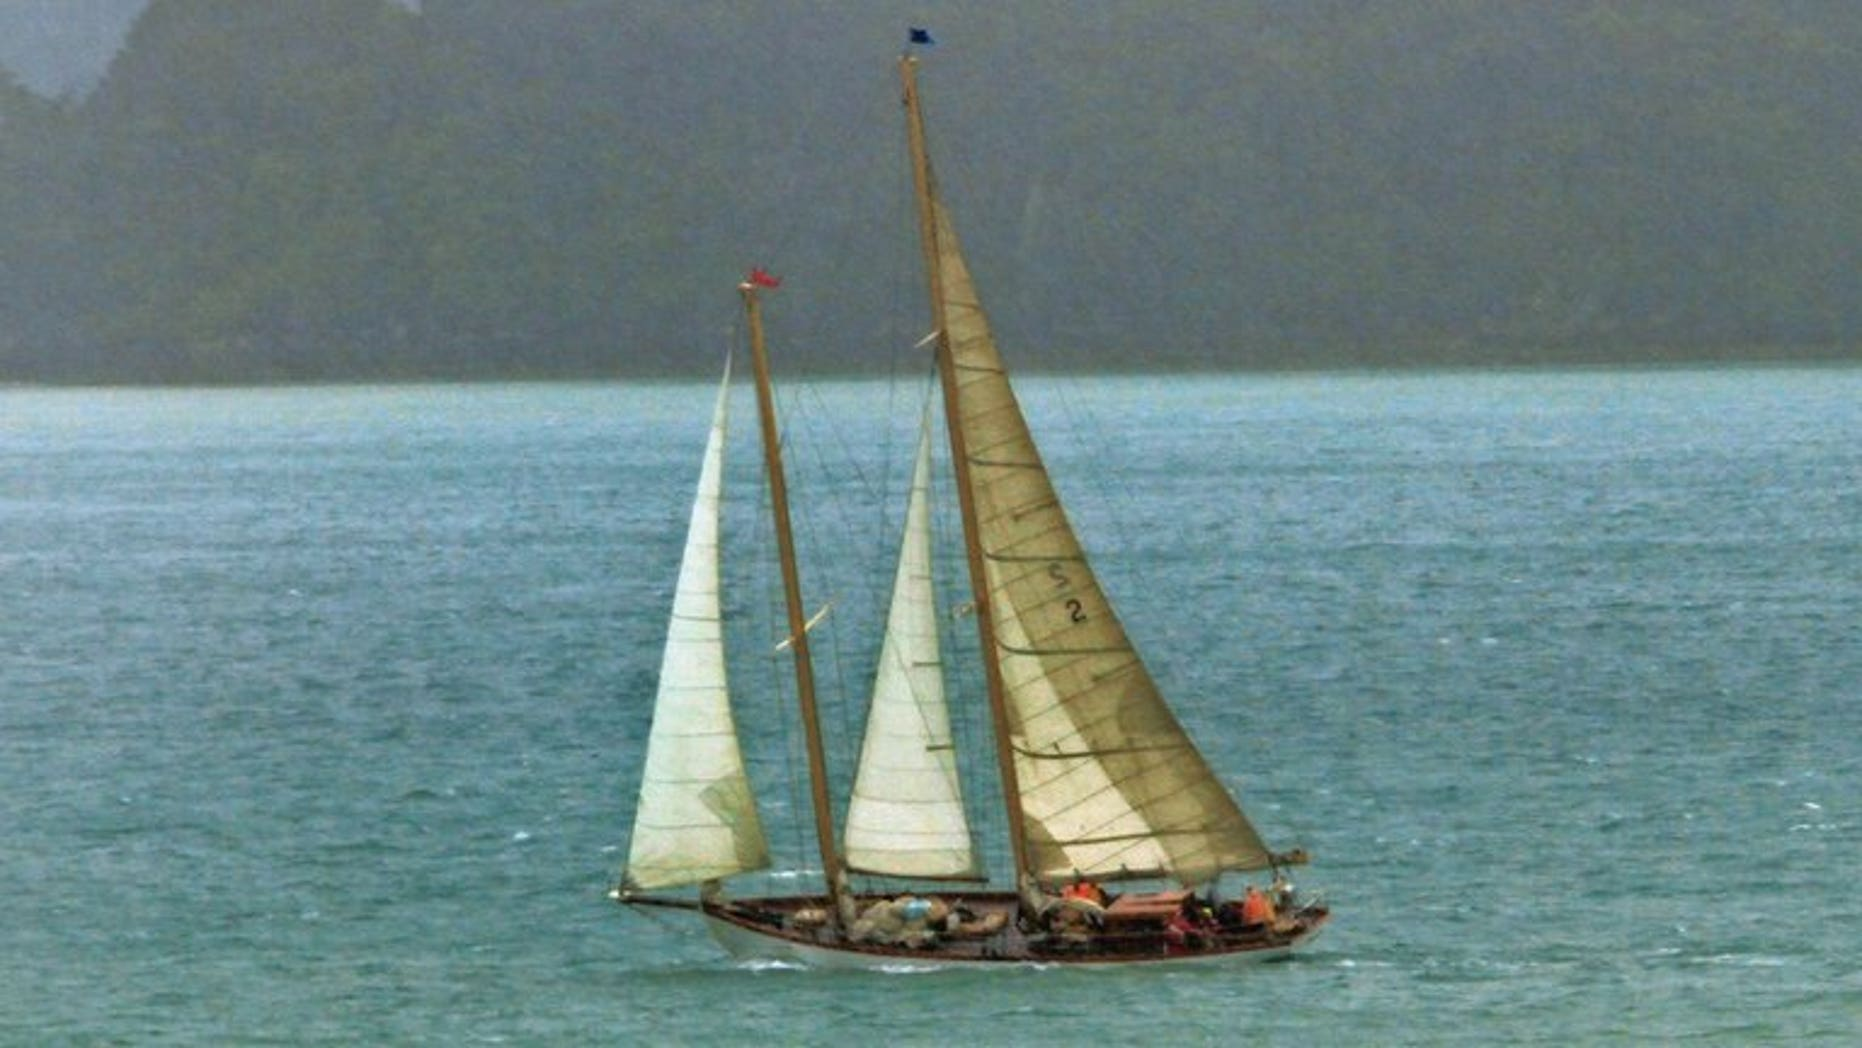 The 21-metre (70-foot) vintage wooden yacht Nina, built in 1928, is shown in Northland, New Zealand in January 2012. New Zealand rescuers have effectively ended the search for the crew of the vintage US yacht that went missing in rough seas more than four weeks ago.